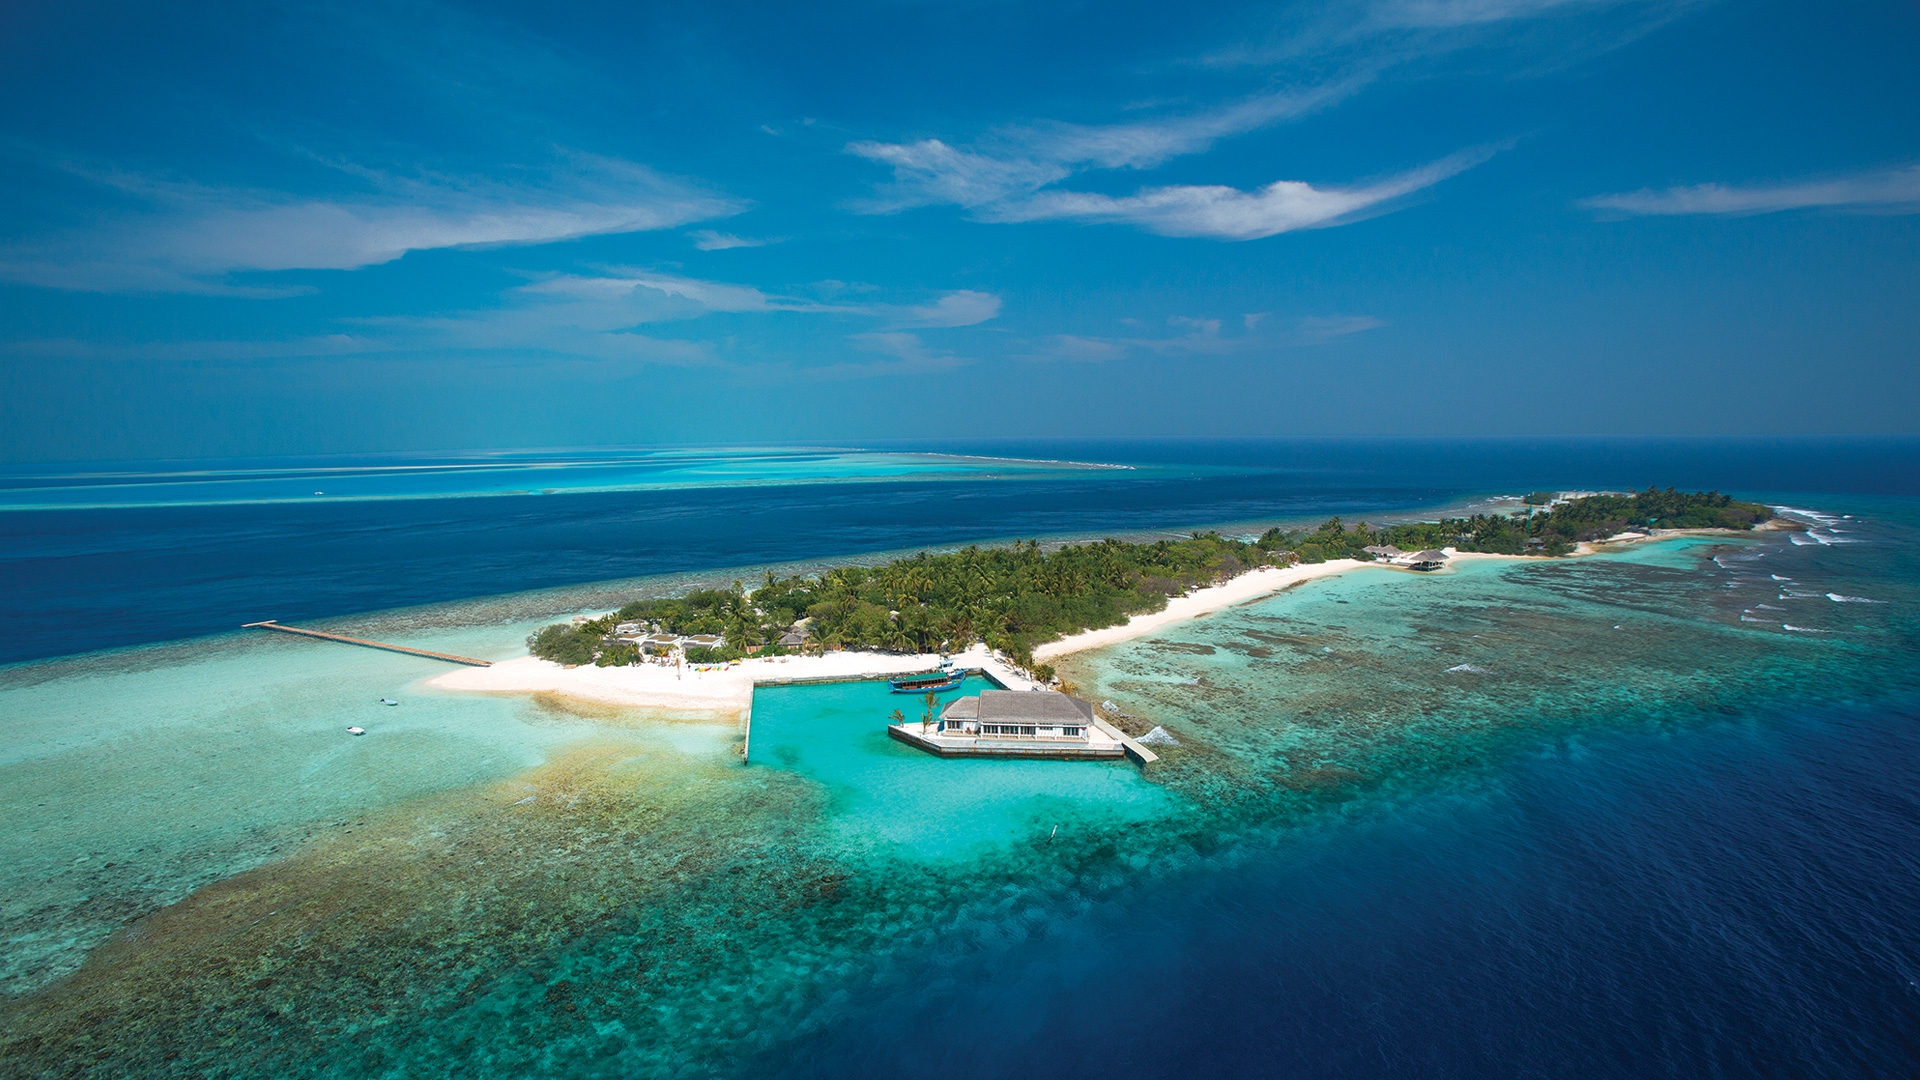 Hotels in maldives  : OBLU by Atmosphere at Helengeli